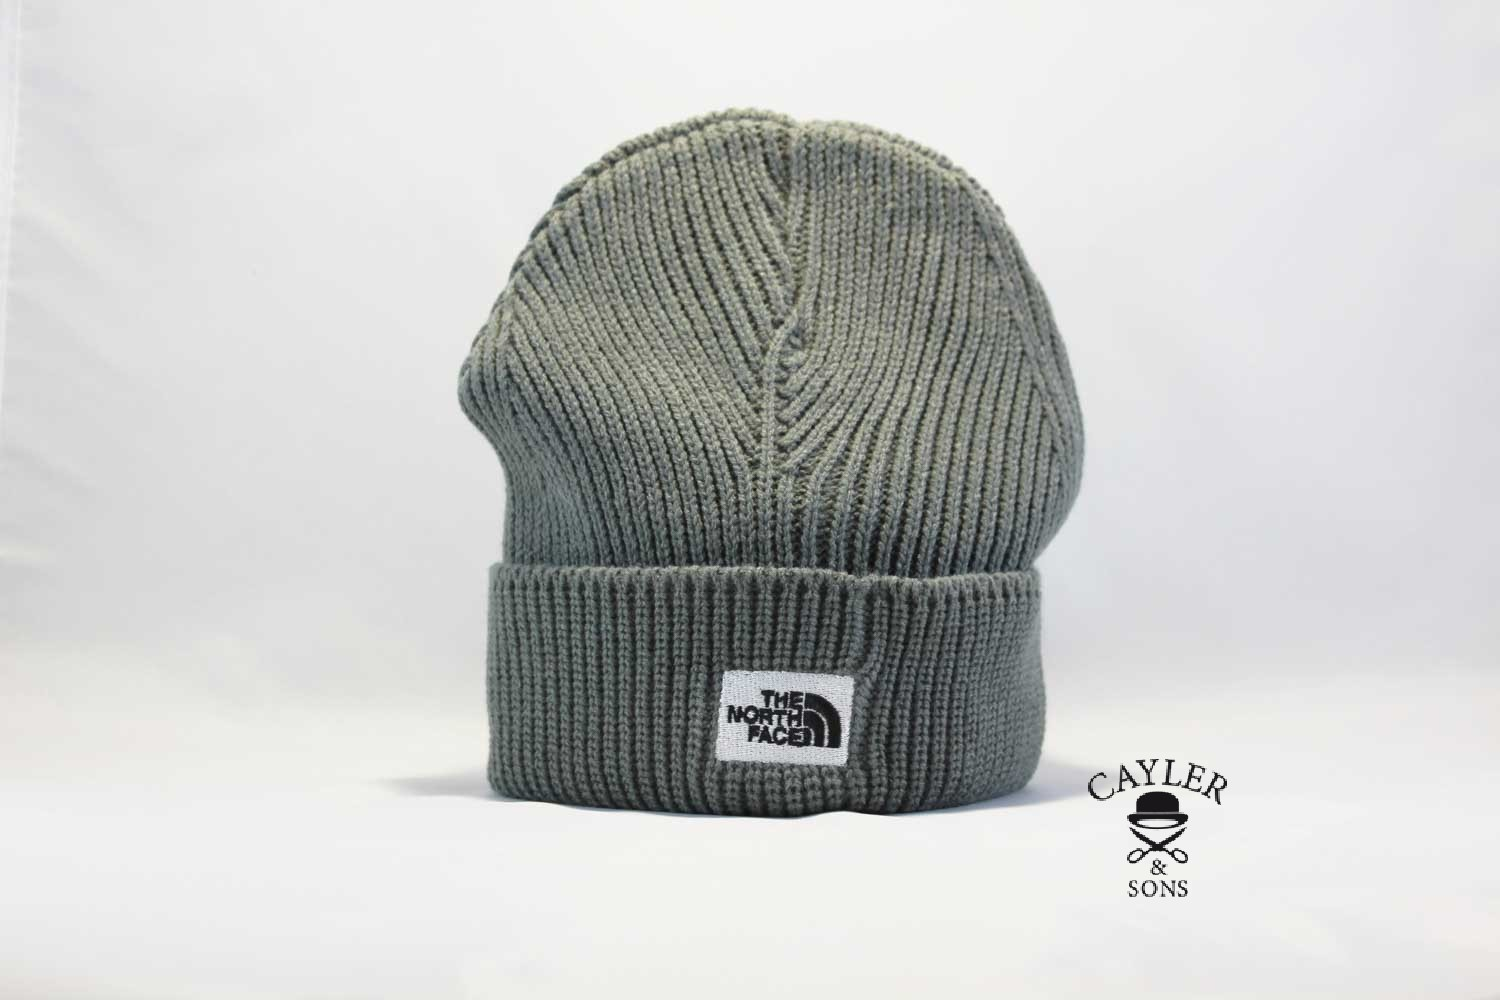 Шапка бини The North Face Beanie серная — Cayler And Sons Украина 8b812be705a0b